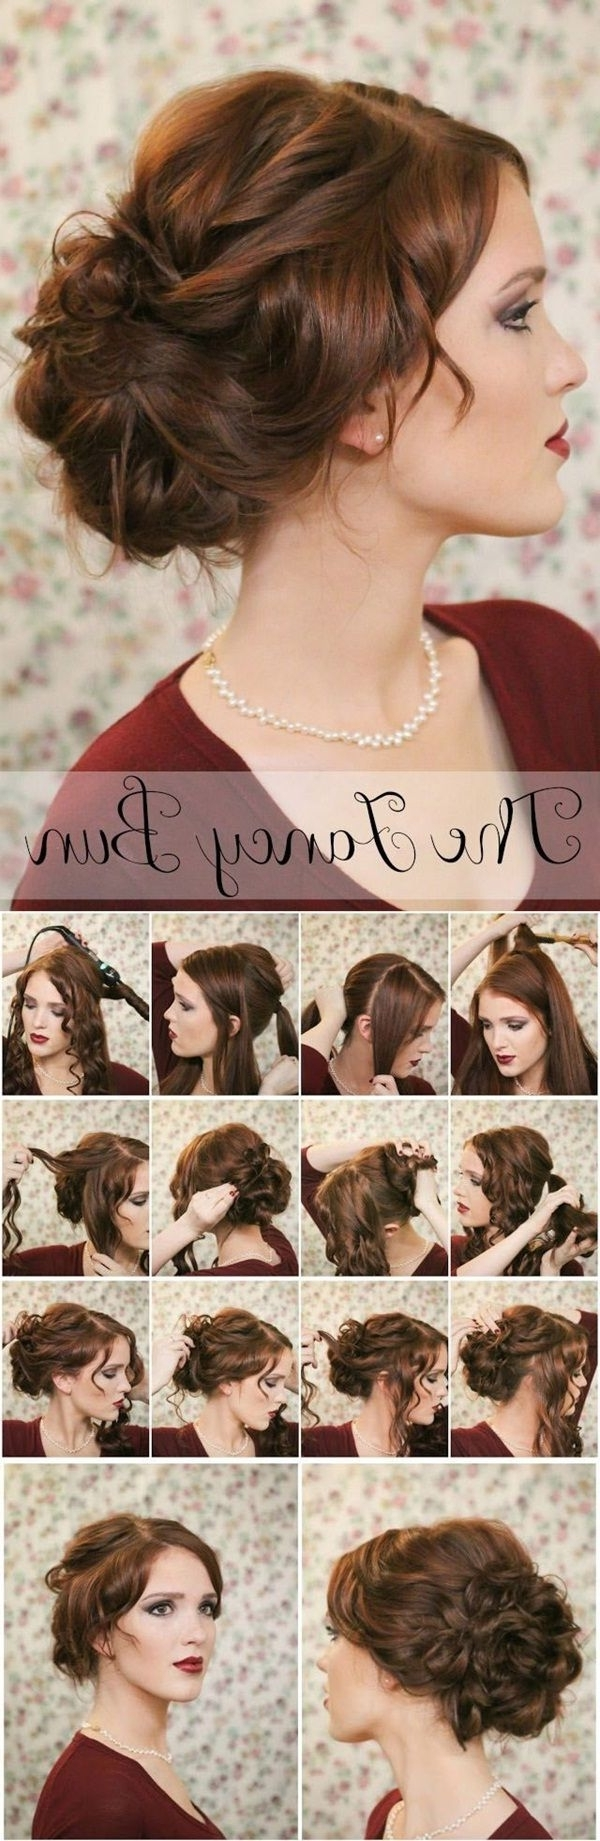 20 Diy Wedding Hairstyles With Tutorials To Try On Your Own Throughout Latest Wedding Hairstyles That You Can Do Yourself (View 9 of 15)